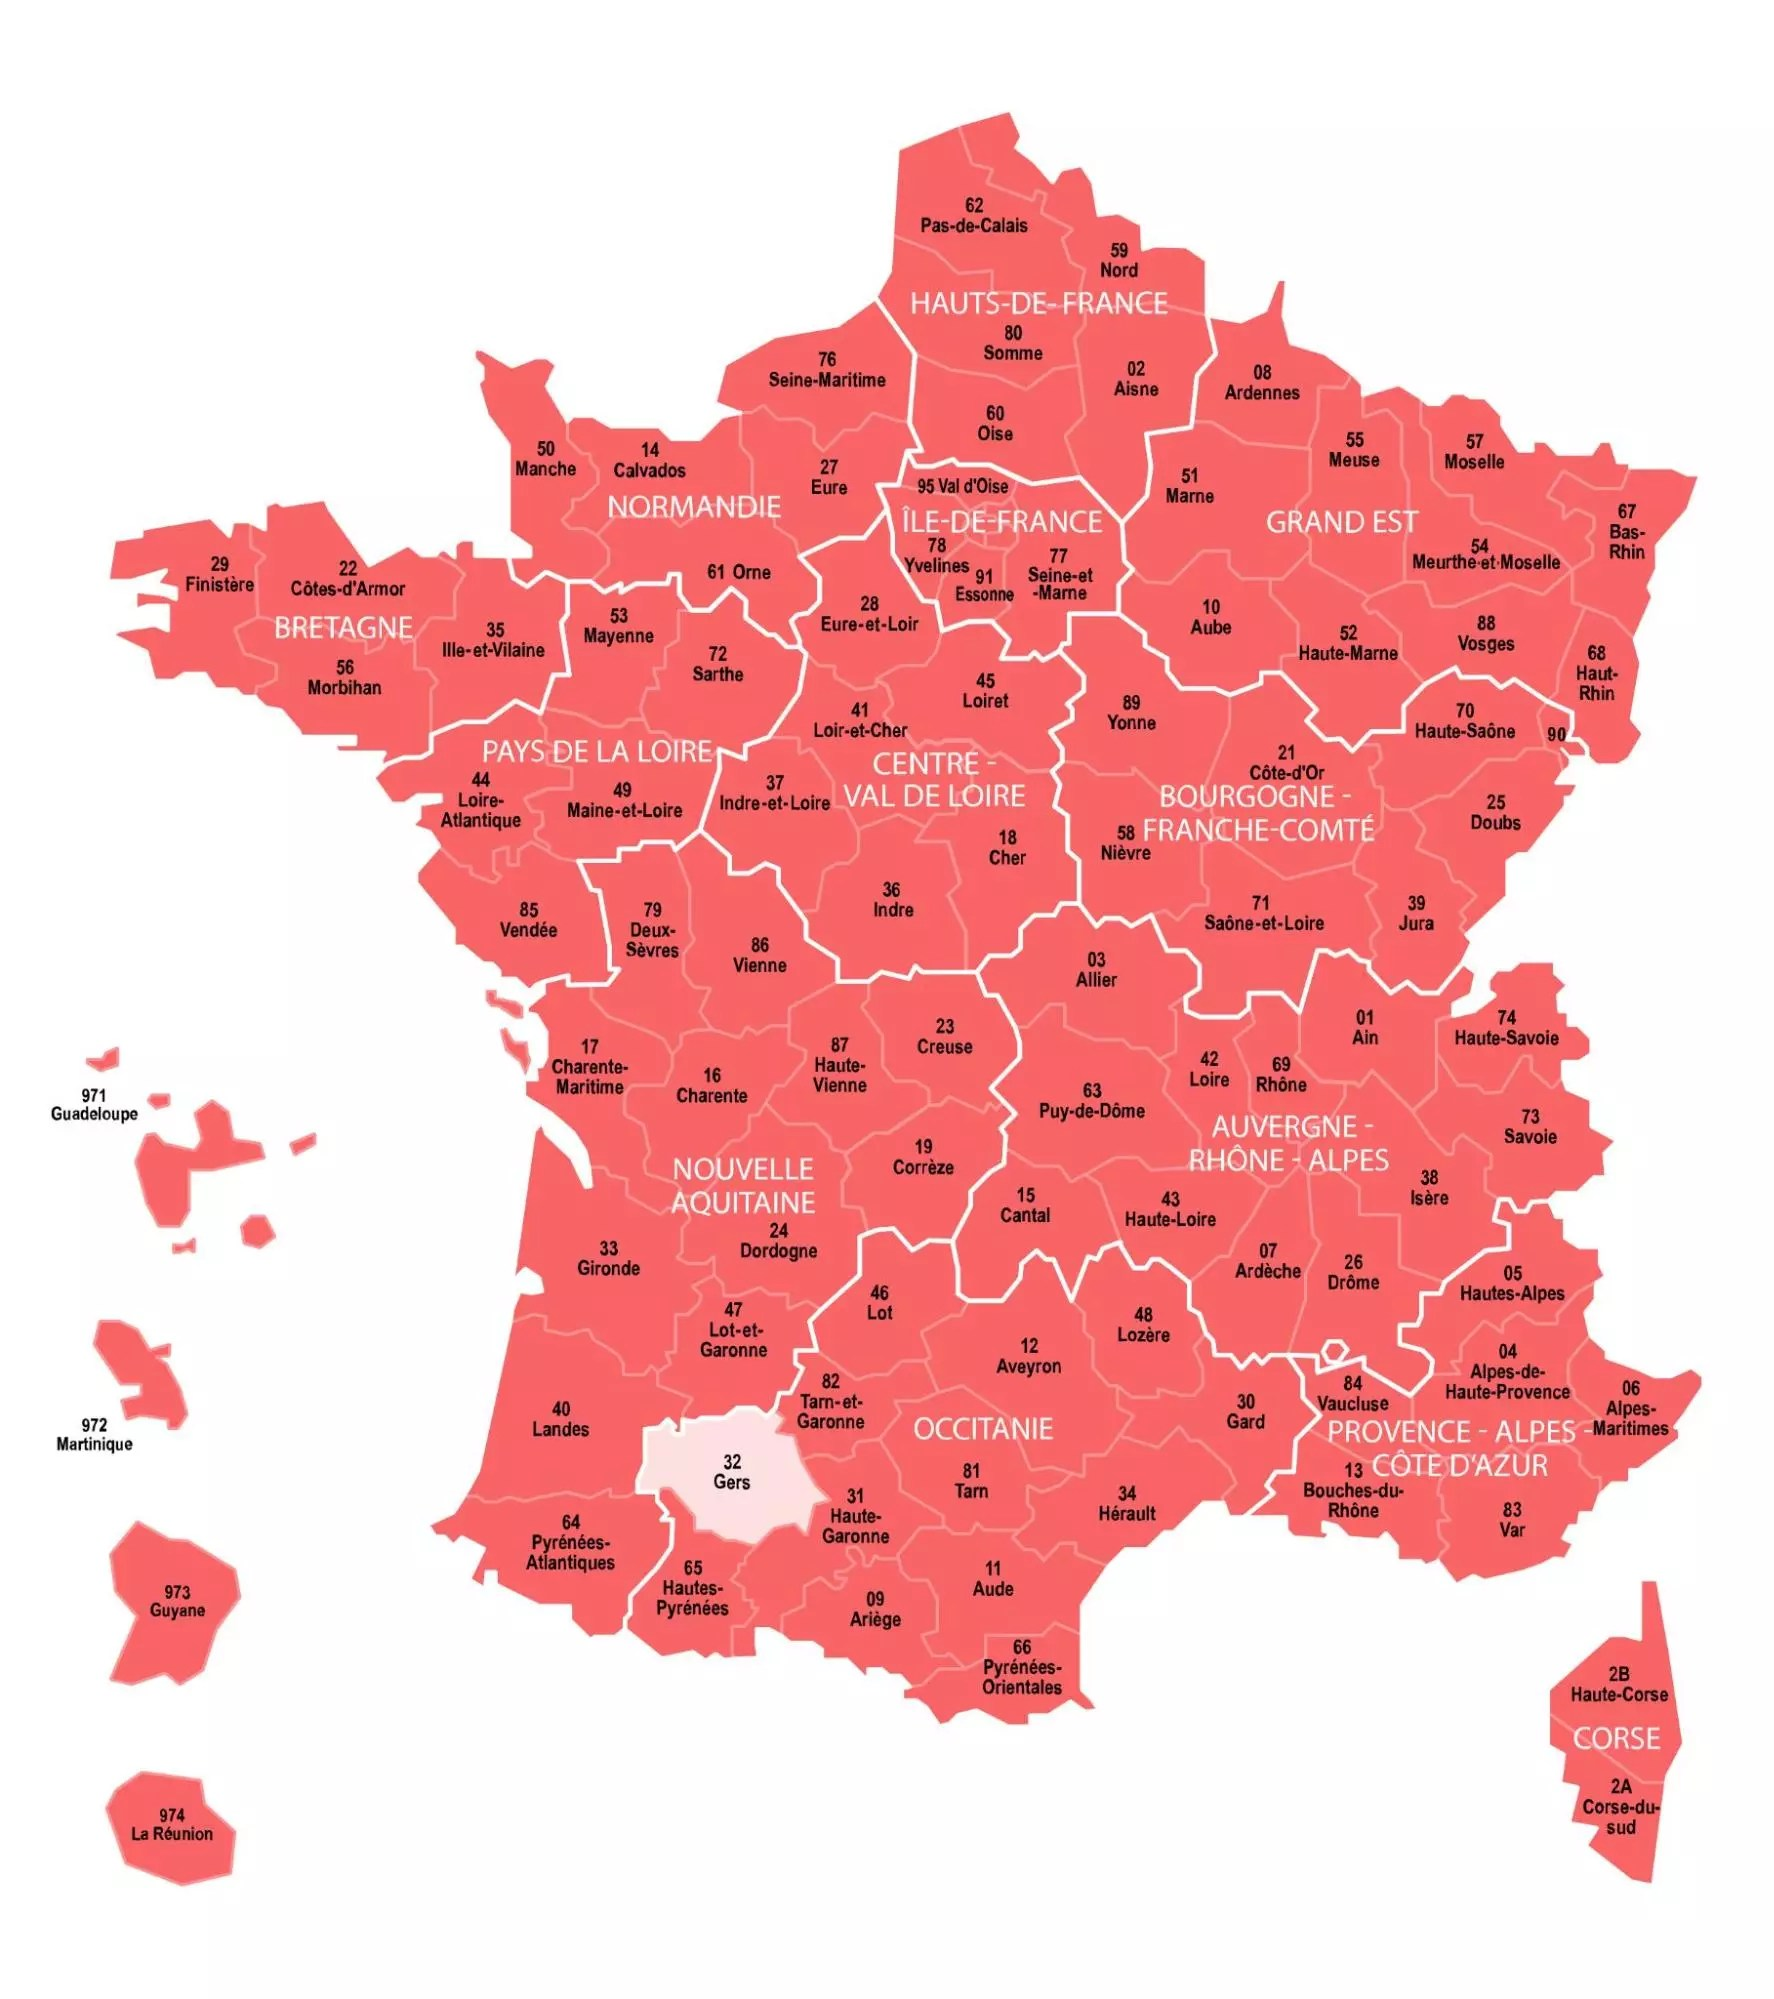 The departments in dark pink show the geographic coverage of civil birth, marriage, and death records in the MyHeritage French collections